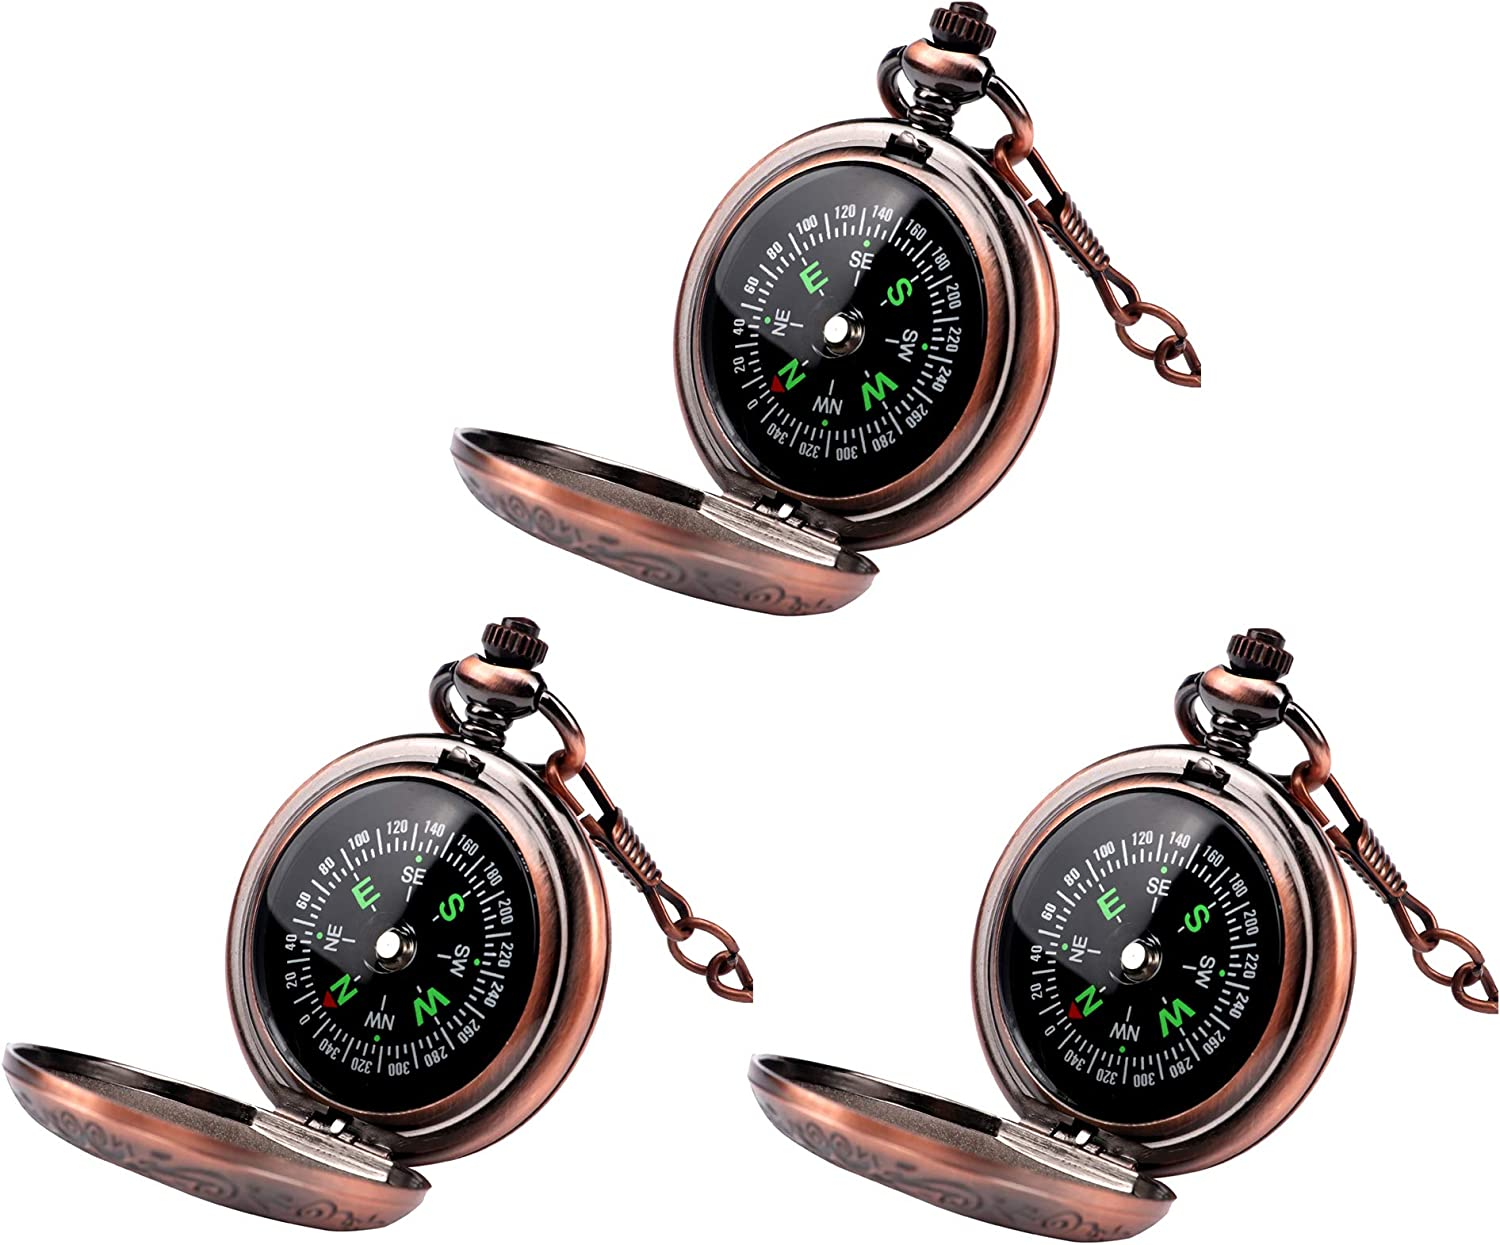 Laupha Survival Gear Compass Vintage Pocket Compass for Kids Classical Collection Portable Compass Accurate Waterproof for Hiking Outdoor Camping Motoring Boating Backpacking Survival Emergency Copper